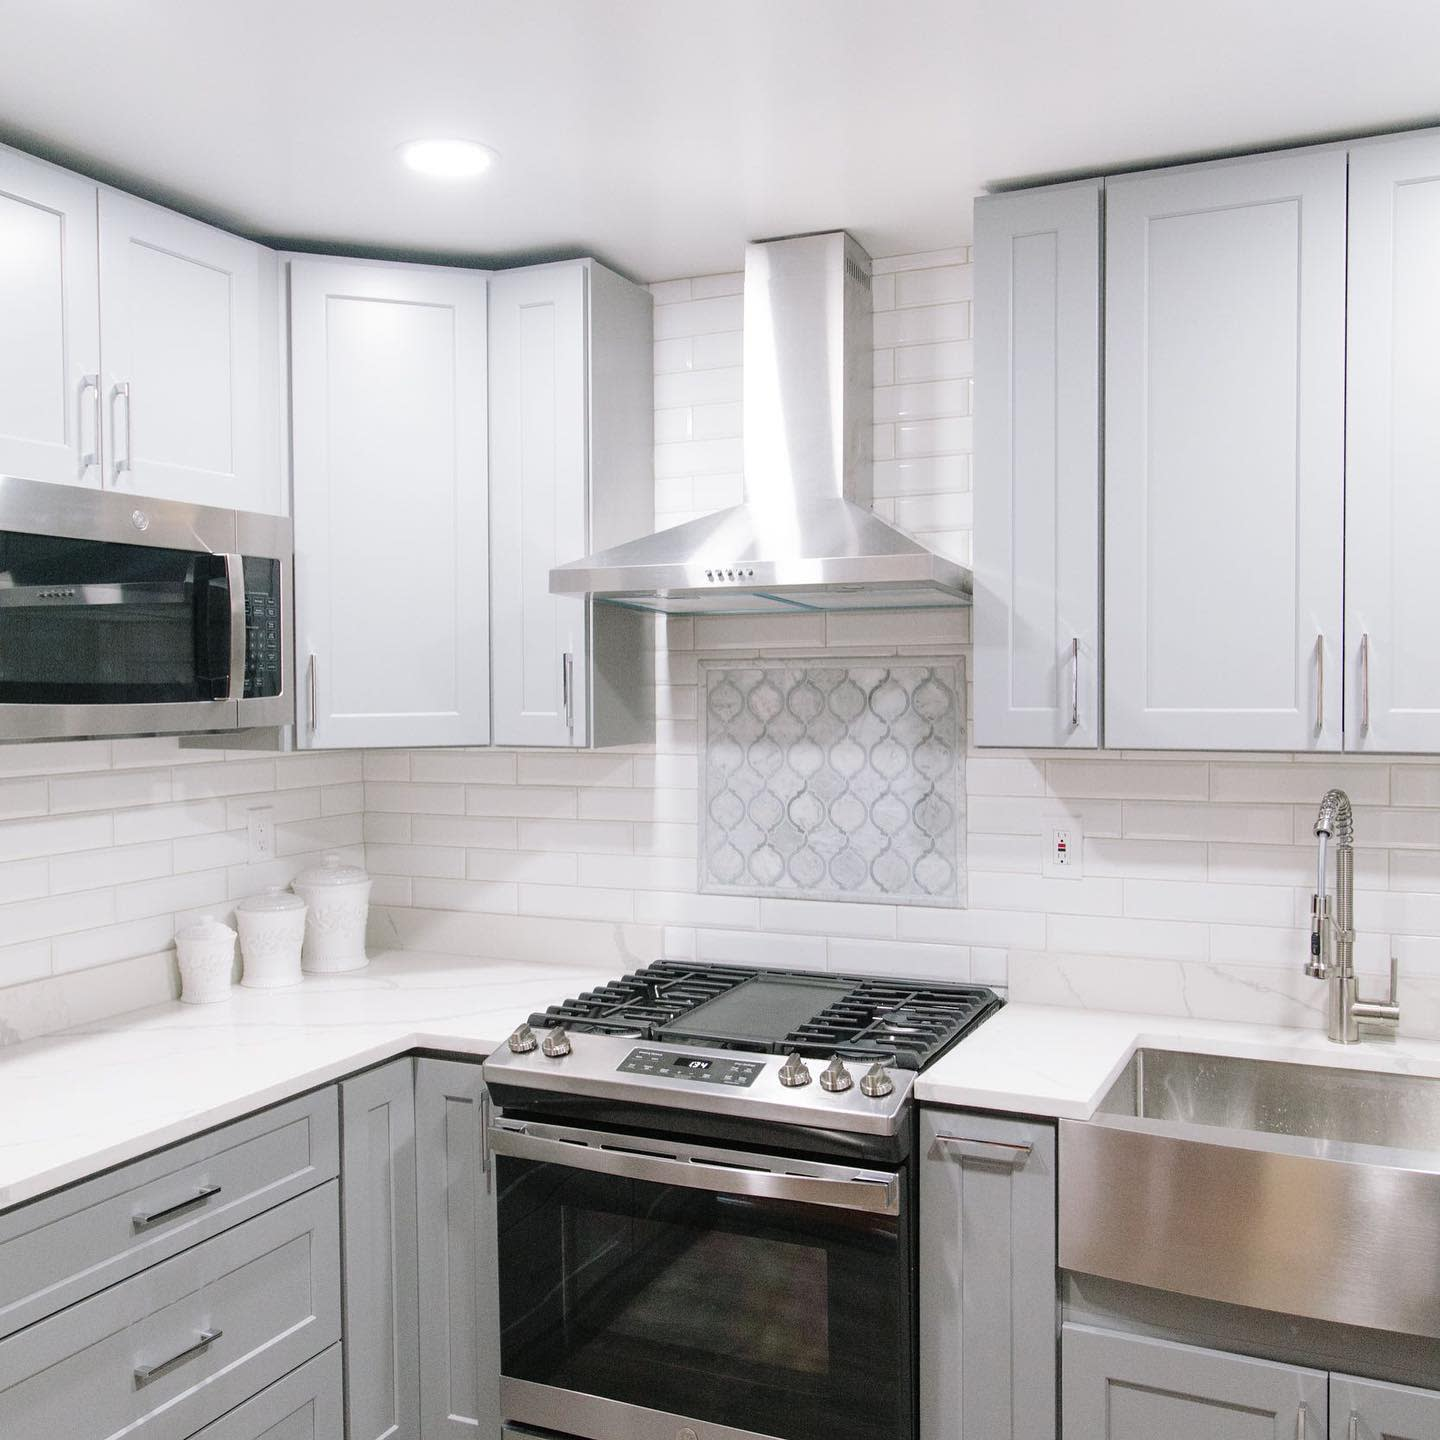 Vent Kitchen Hood Ideas -attentiontodetail_homes